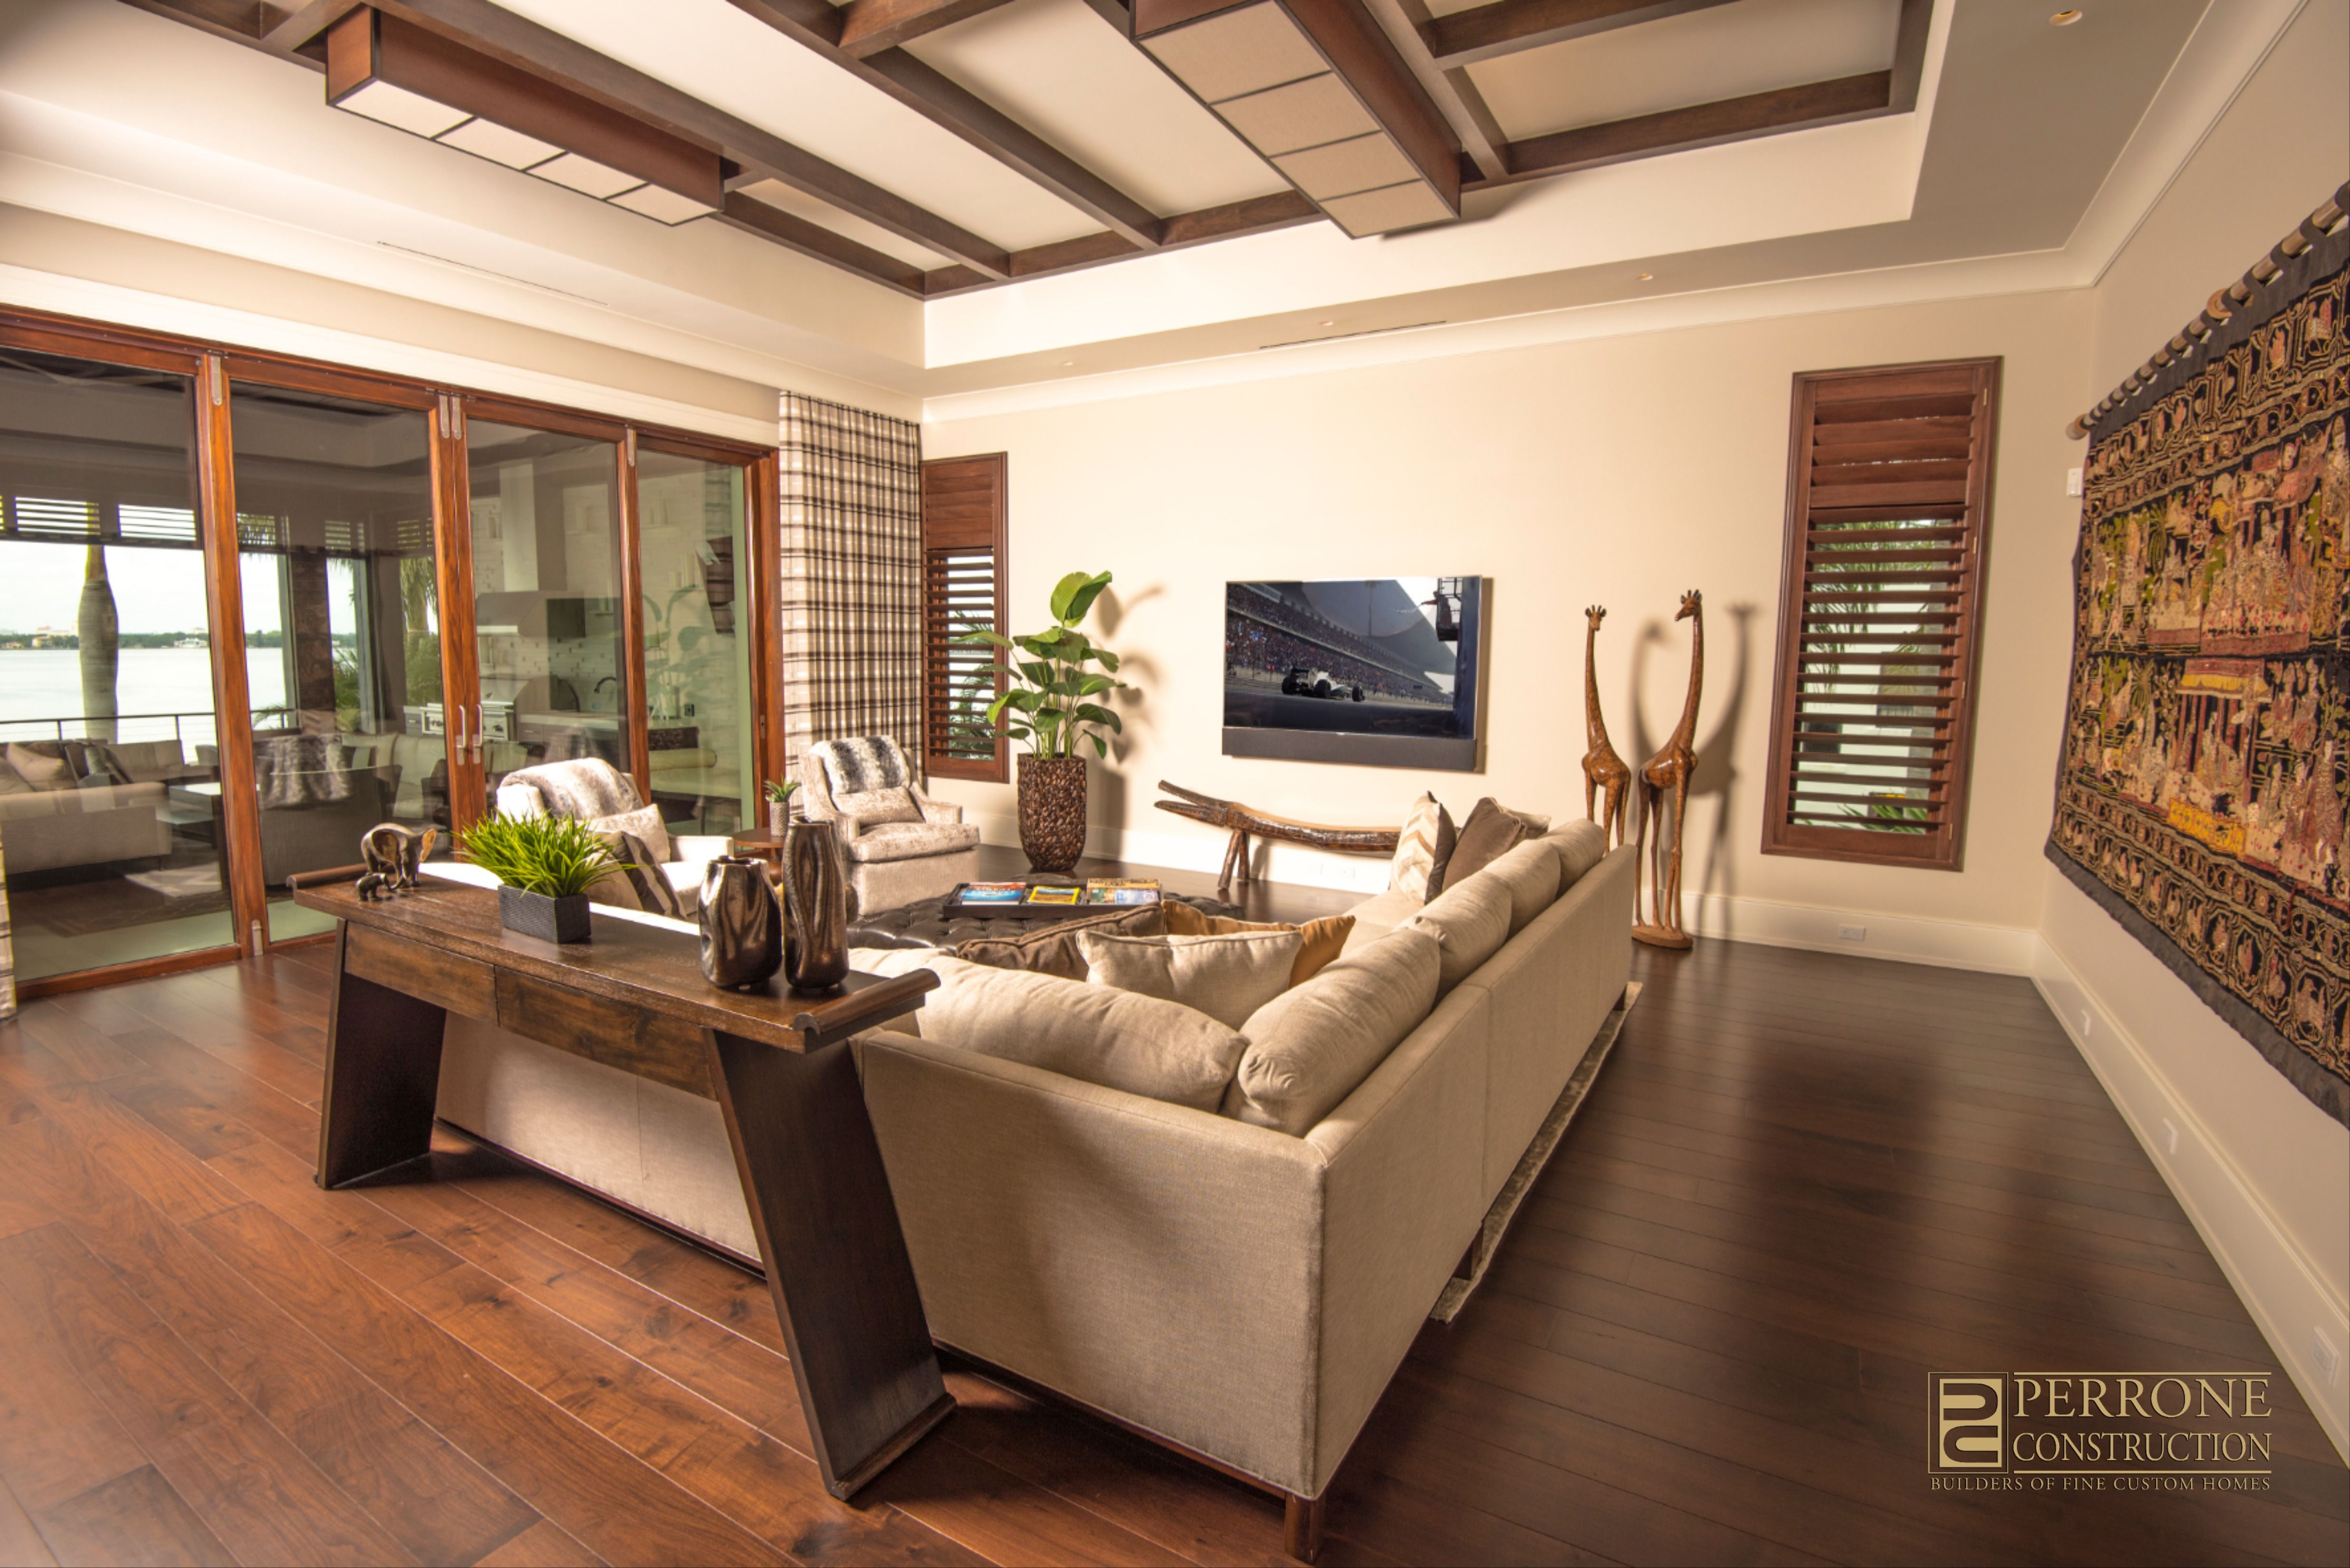 This Luxury Custom Home Is A British West Indies Style Architecture Inspired By The Cove Resort In 2020 British West Indies Architecture Home British West Indies Style